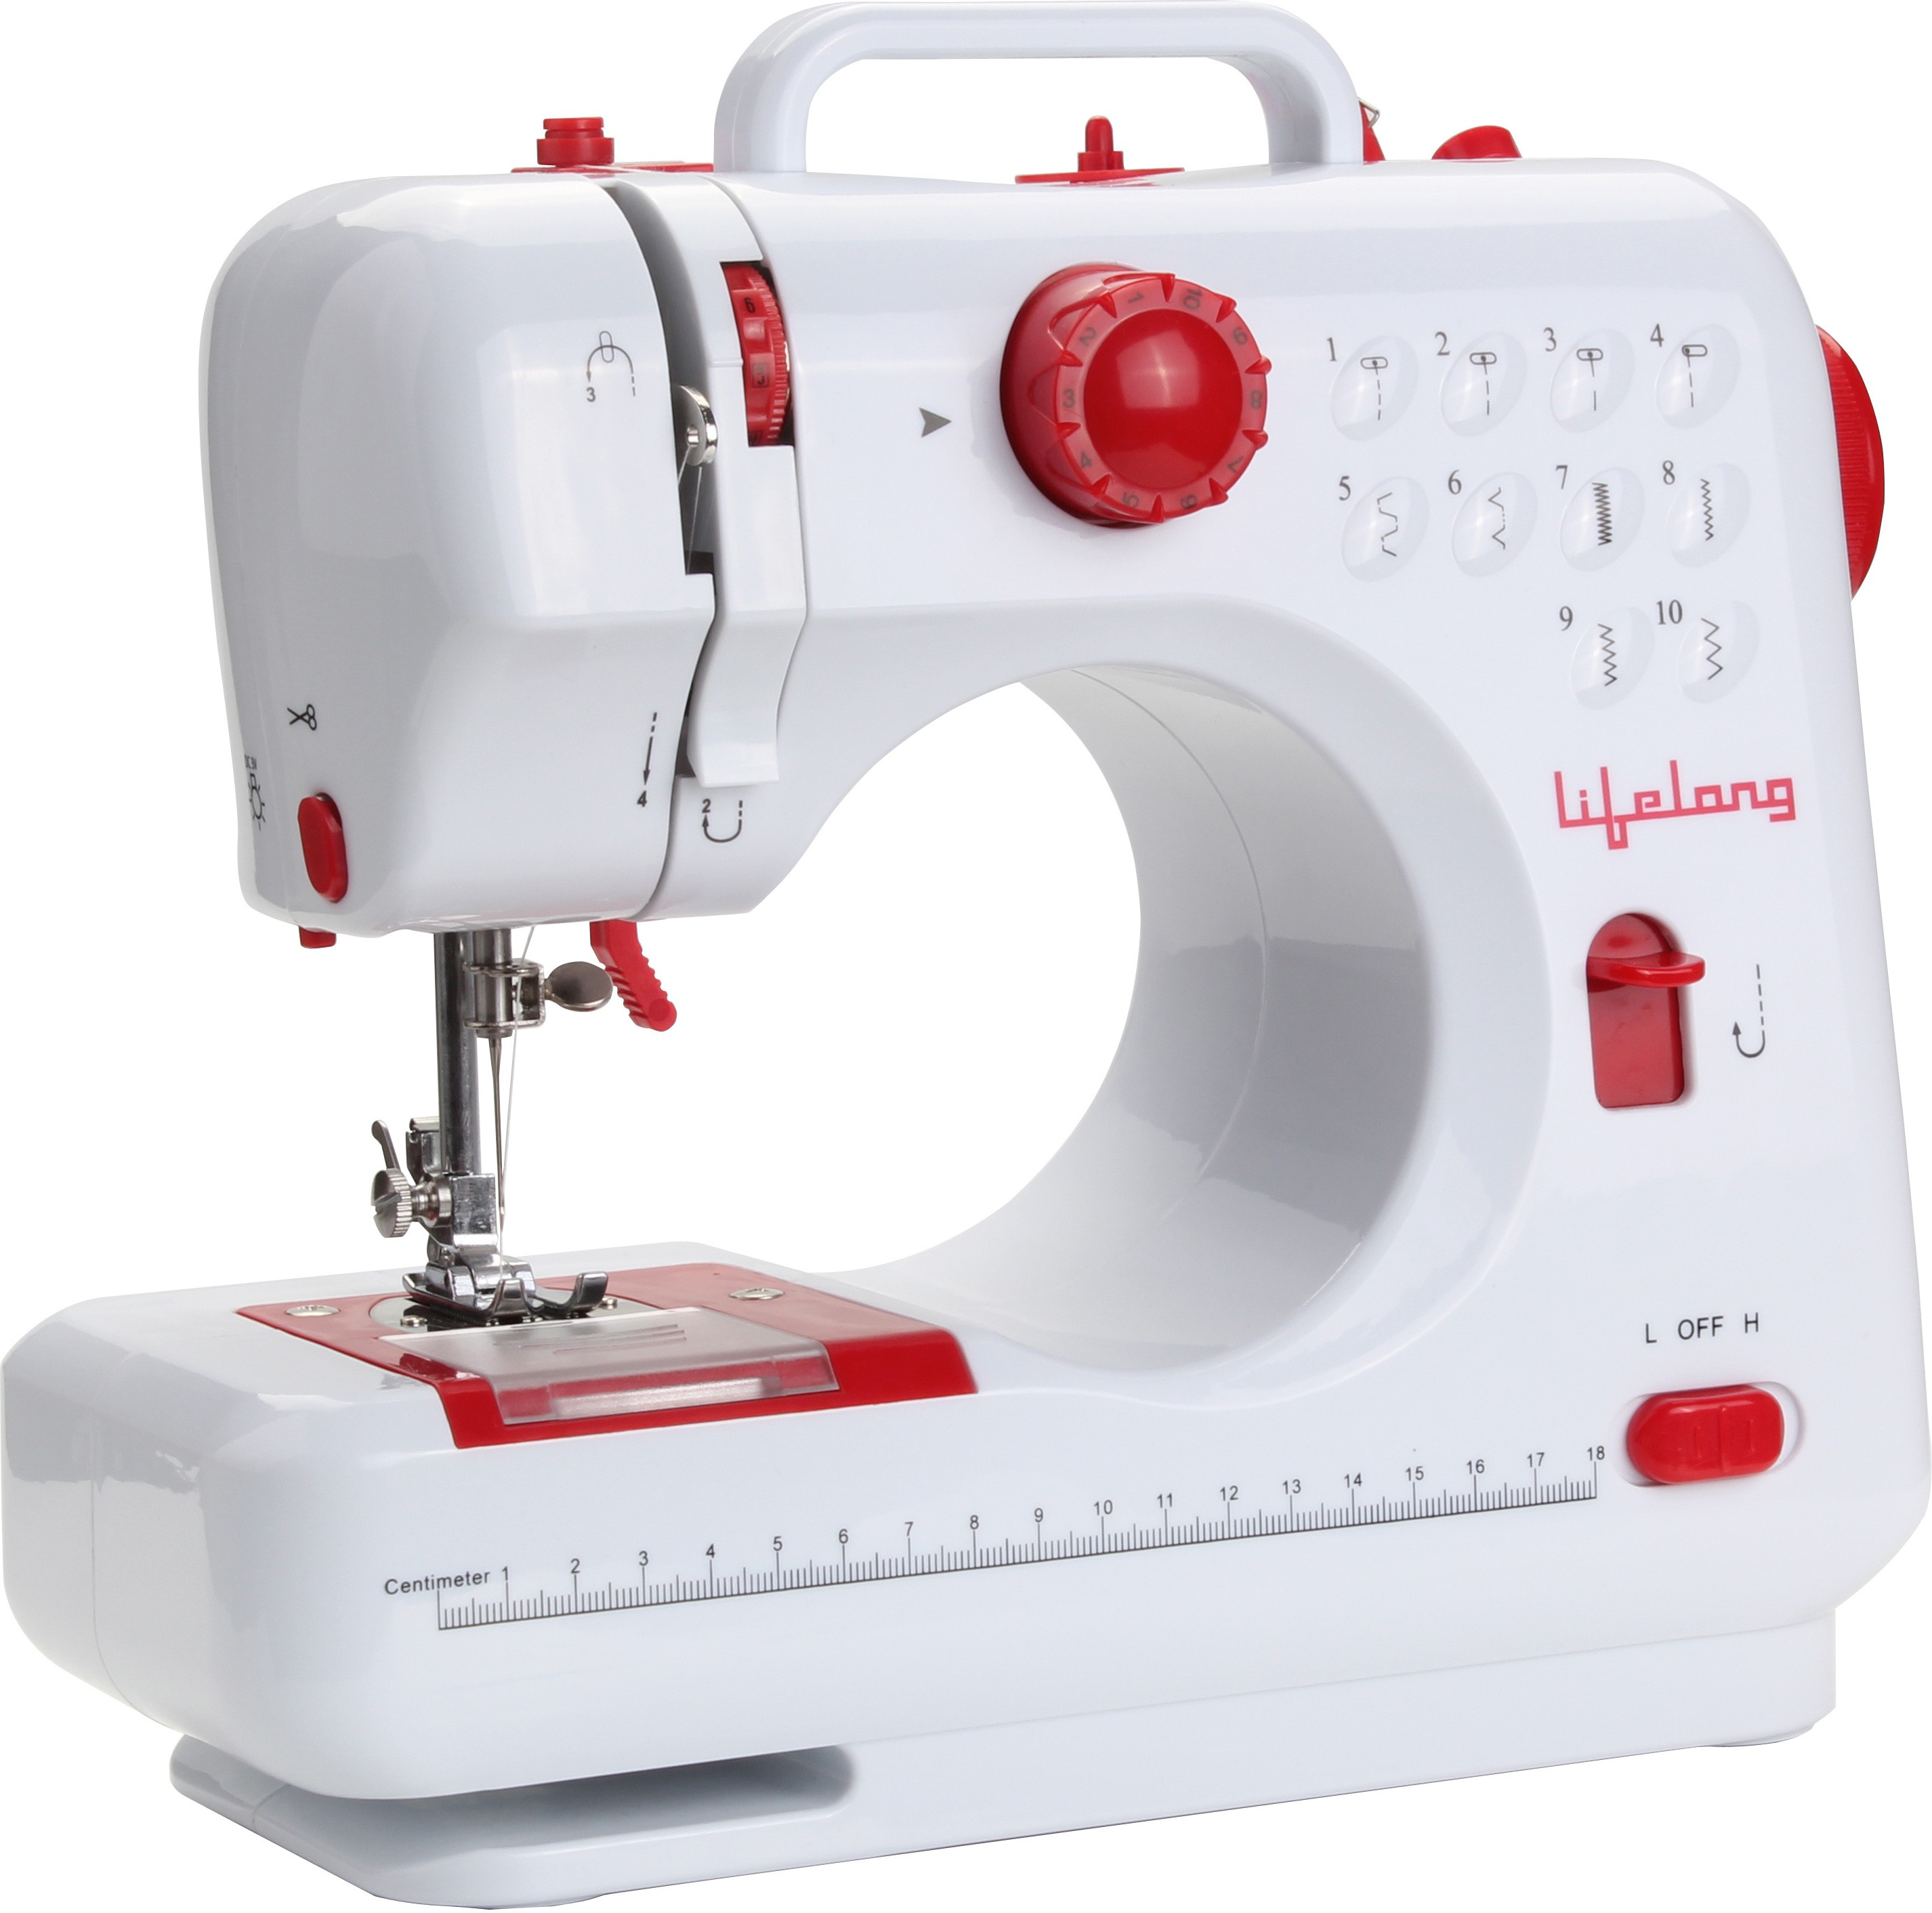 Lifelong HomeStyle Electric Sewing Machine( Built-in Stitches 10)